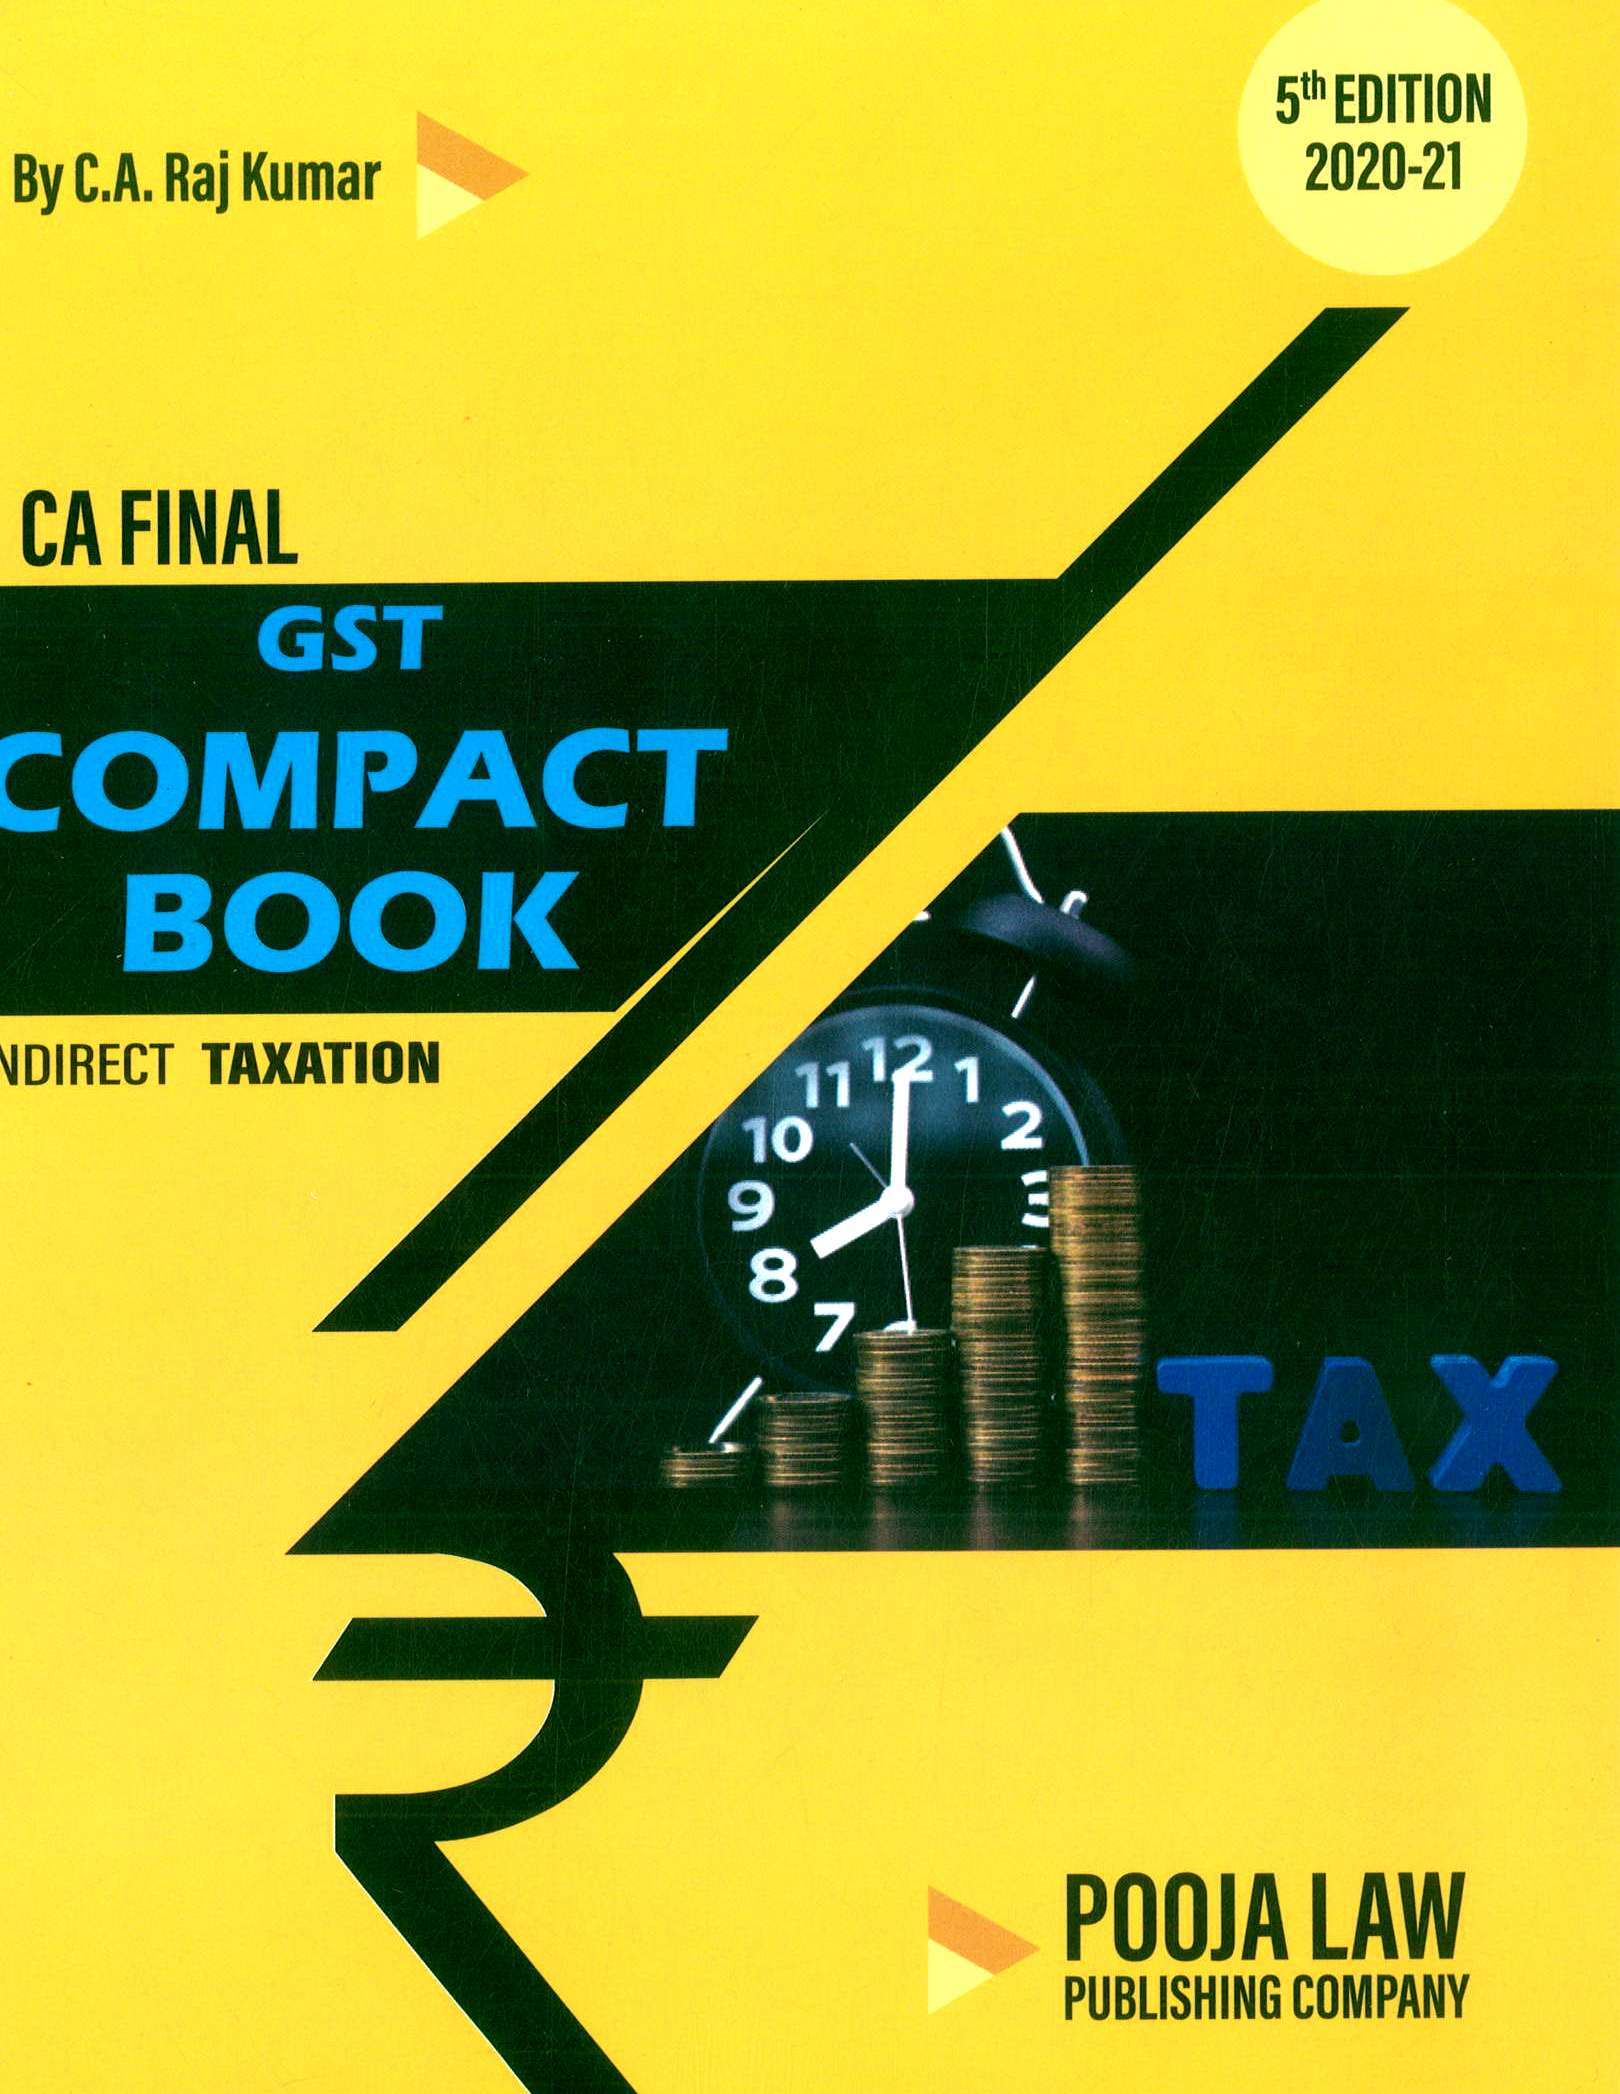 Pooja Law House Indirect Taxation Compact Book on GST Old And New Syllabus for CA Final By CA Raj Kumar Applicable for Nov 2020 Exam